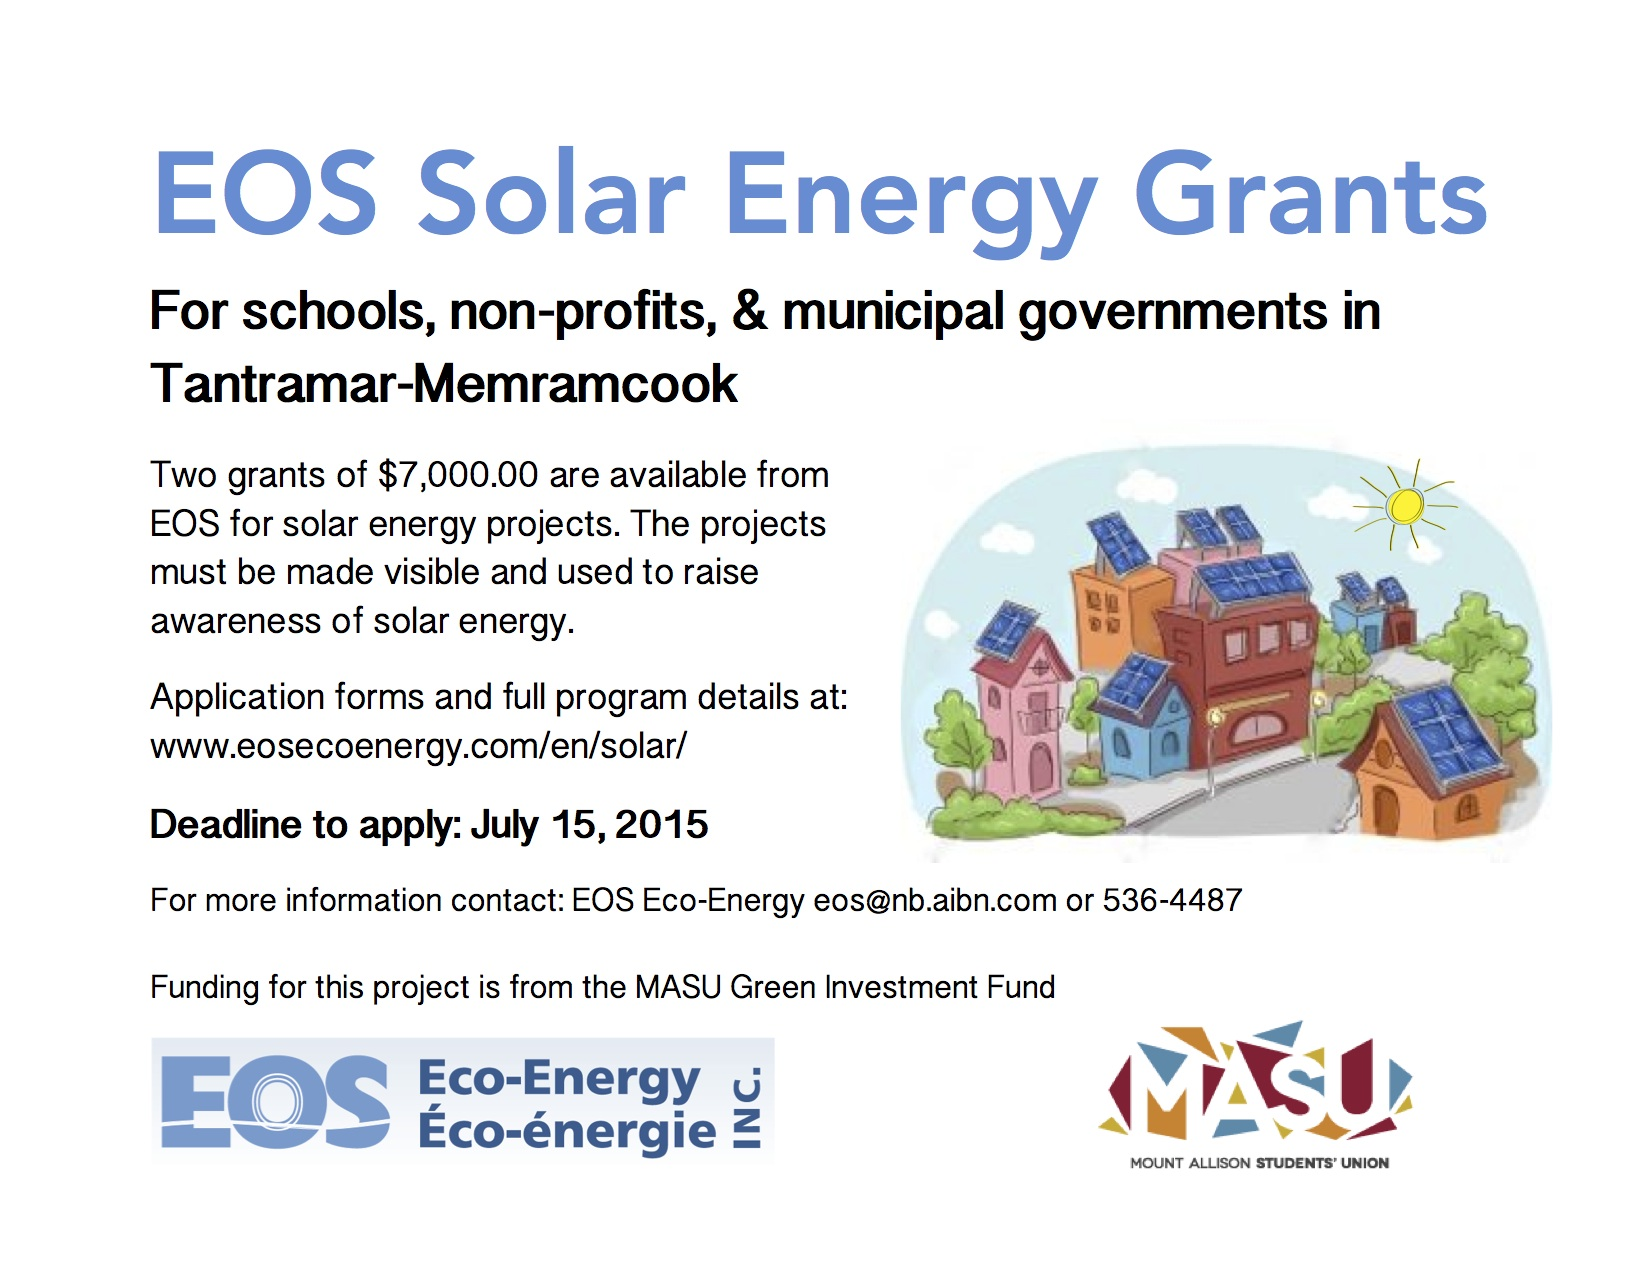 EOS has Solar Energy Grants for Non-profits, Schools, and